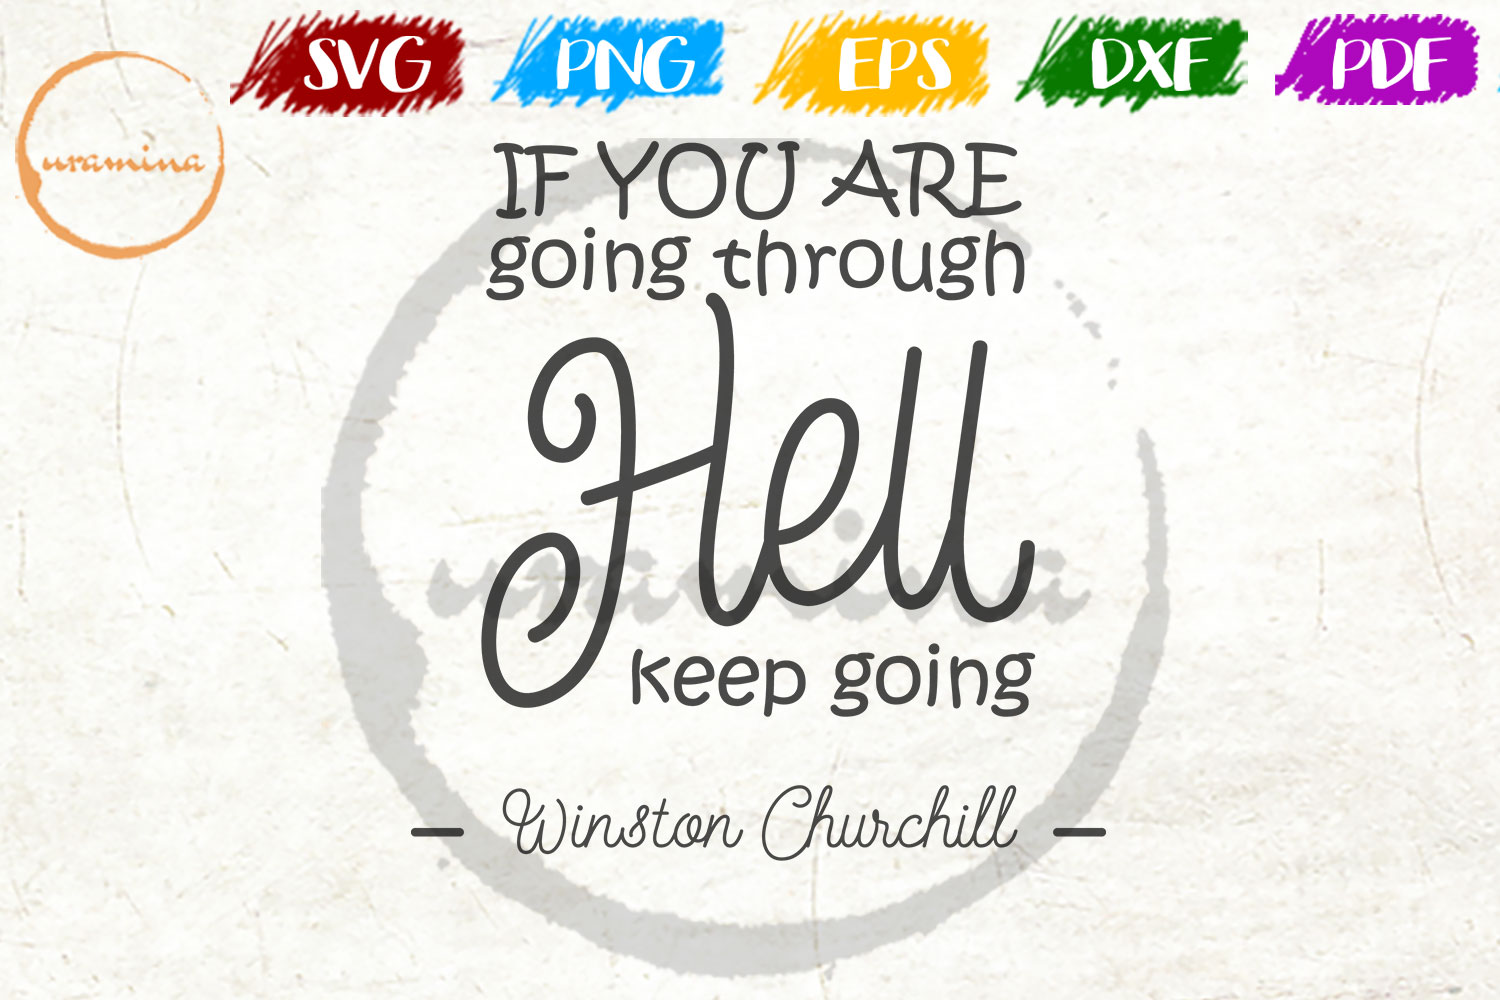 Download Free If You Are Going Through Hell Keep Going Graphic By Uramina for Cricut Explore, Silhouette and other cutting machines.